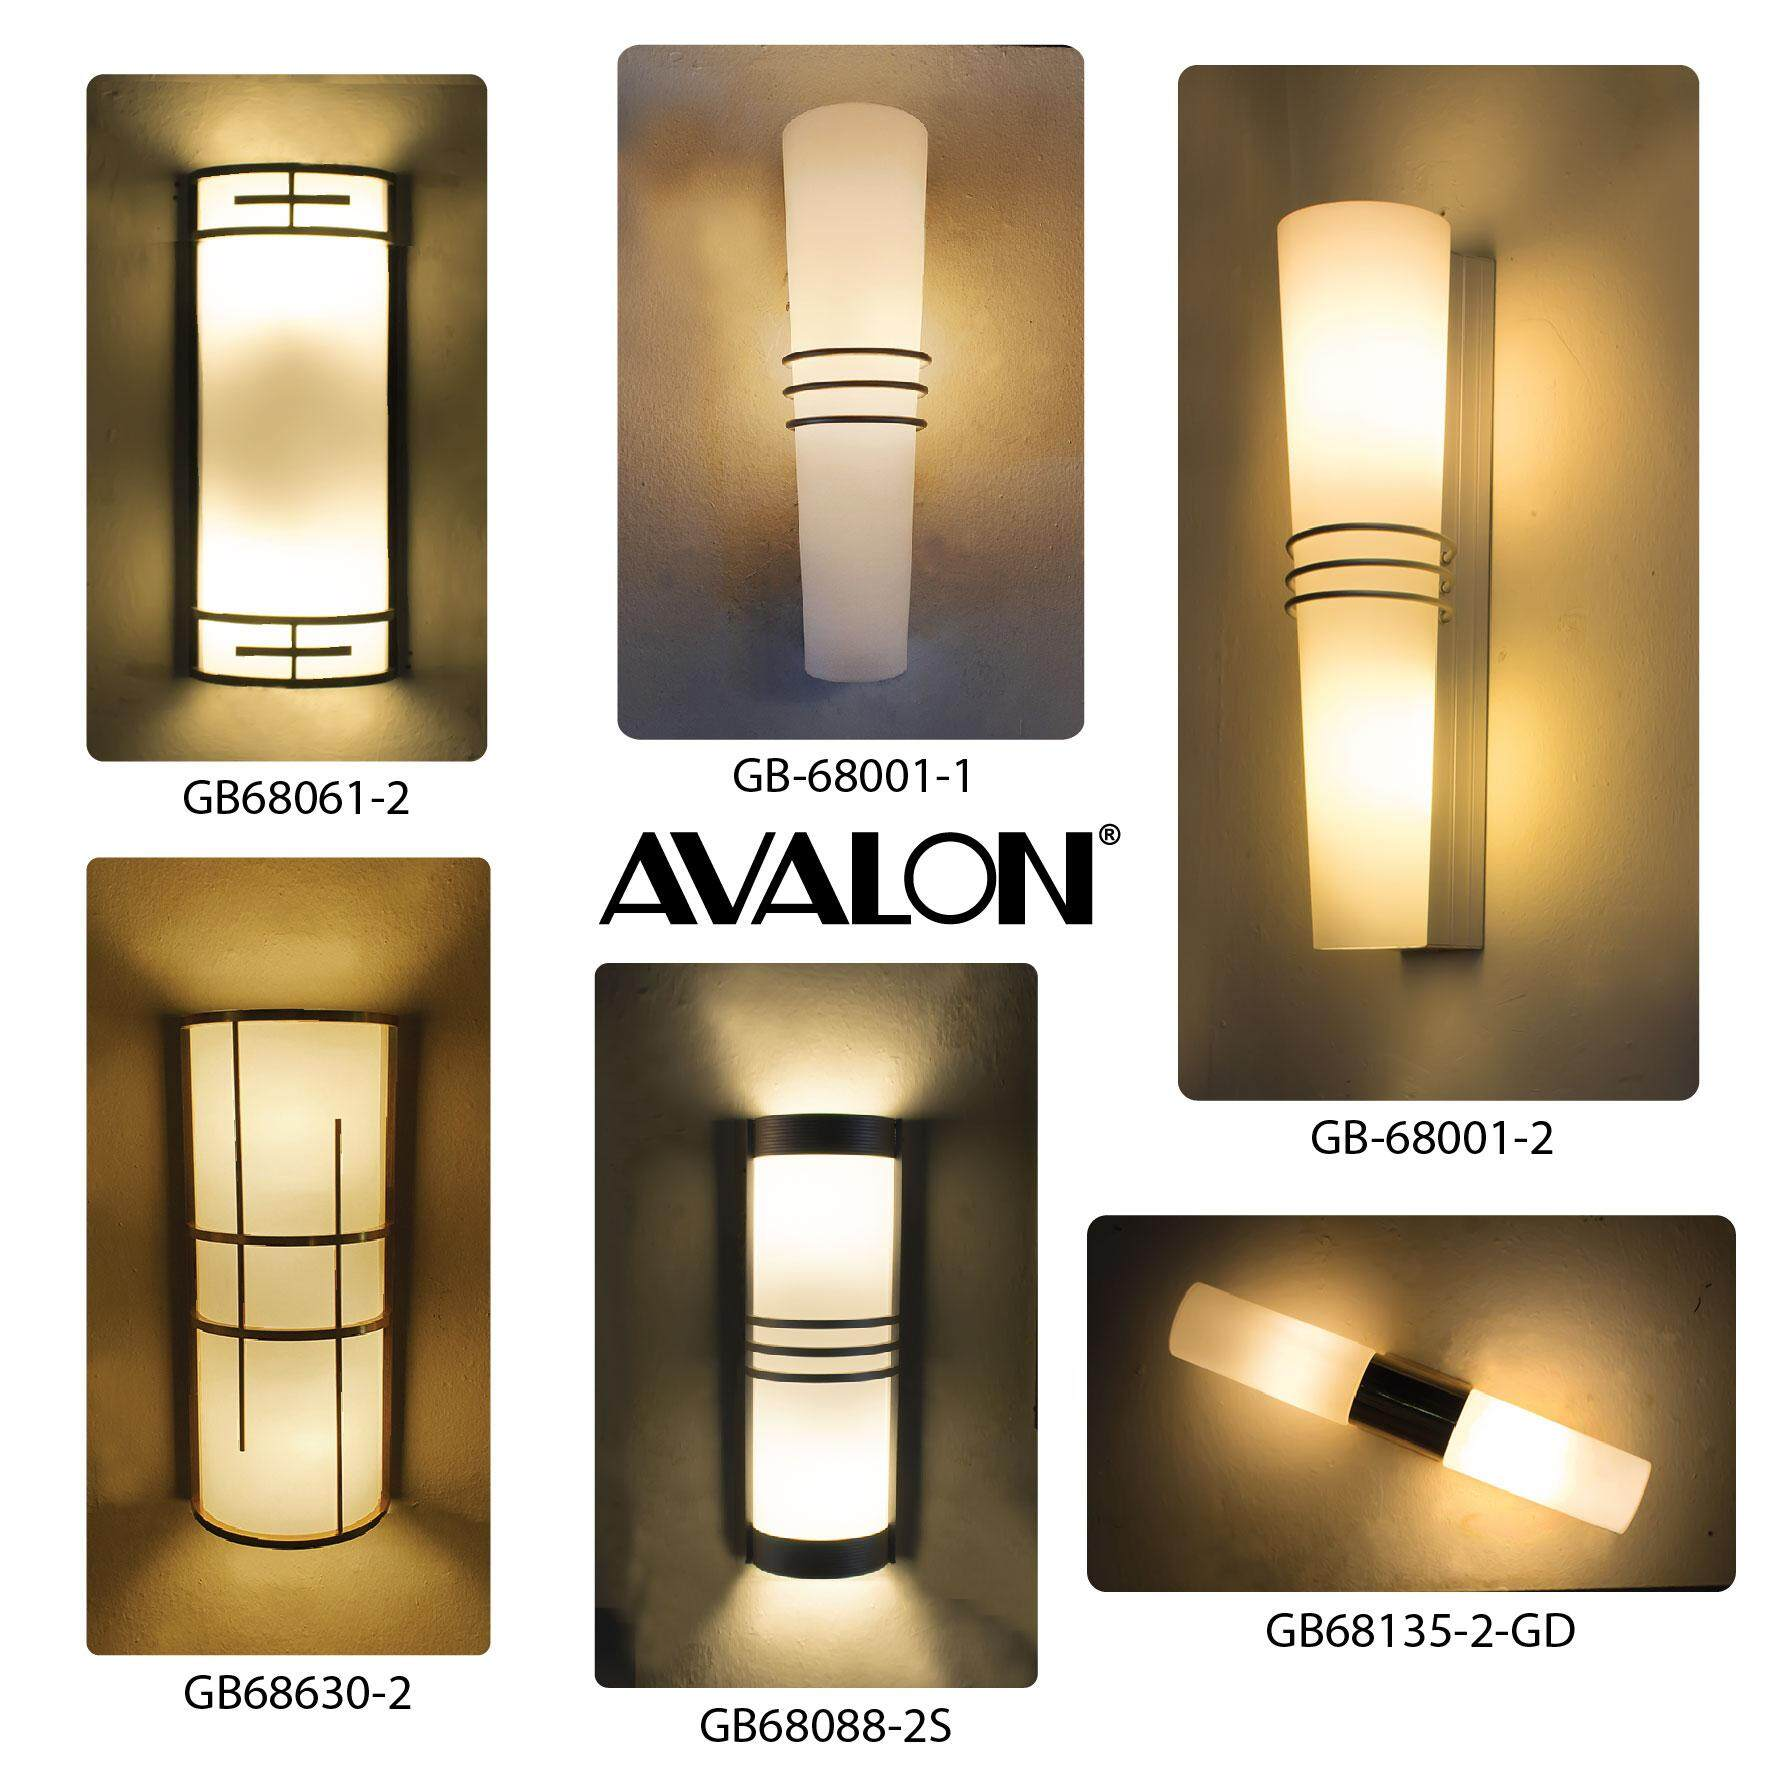 Avalon Lighting At Best Price In